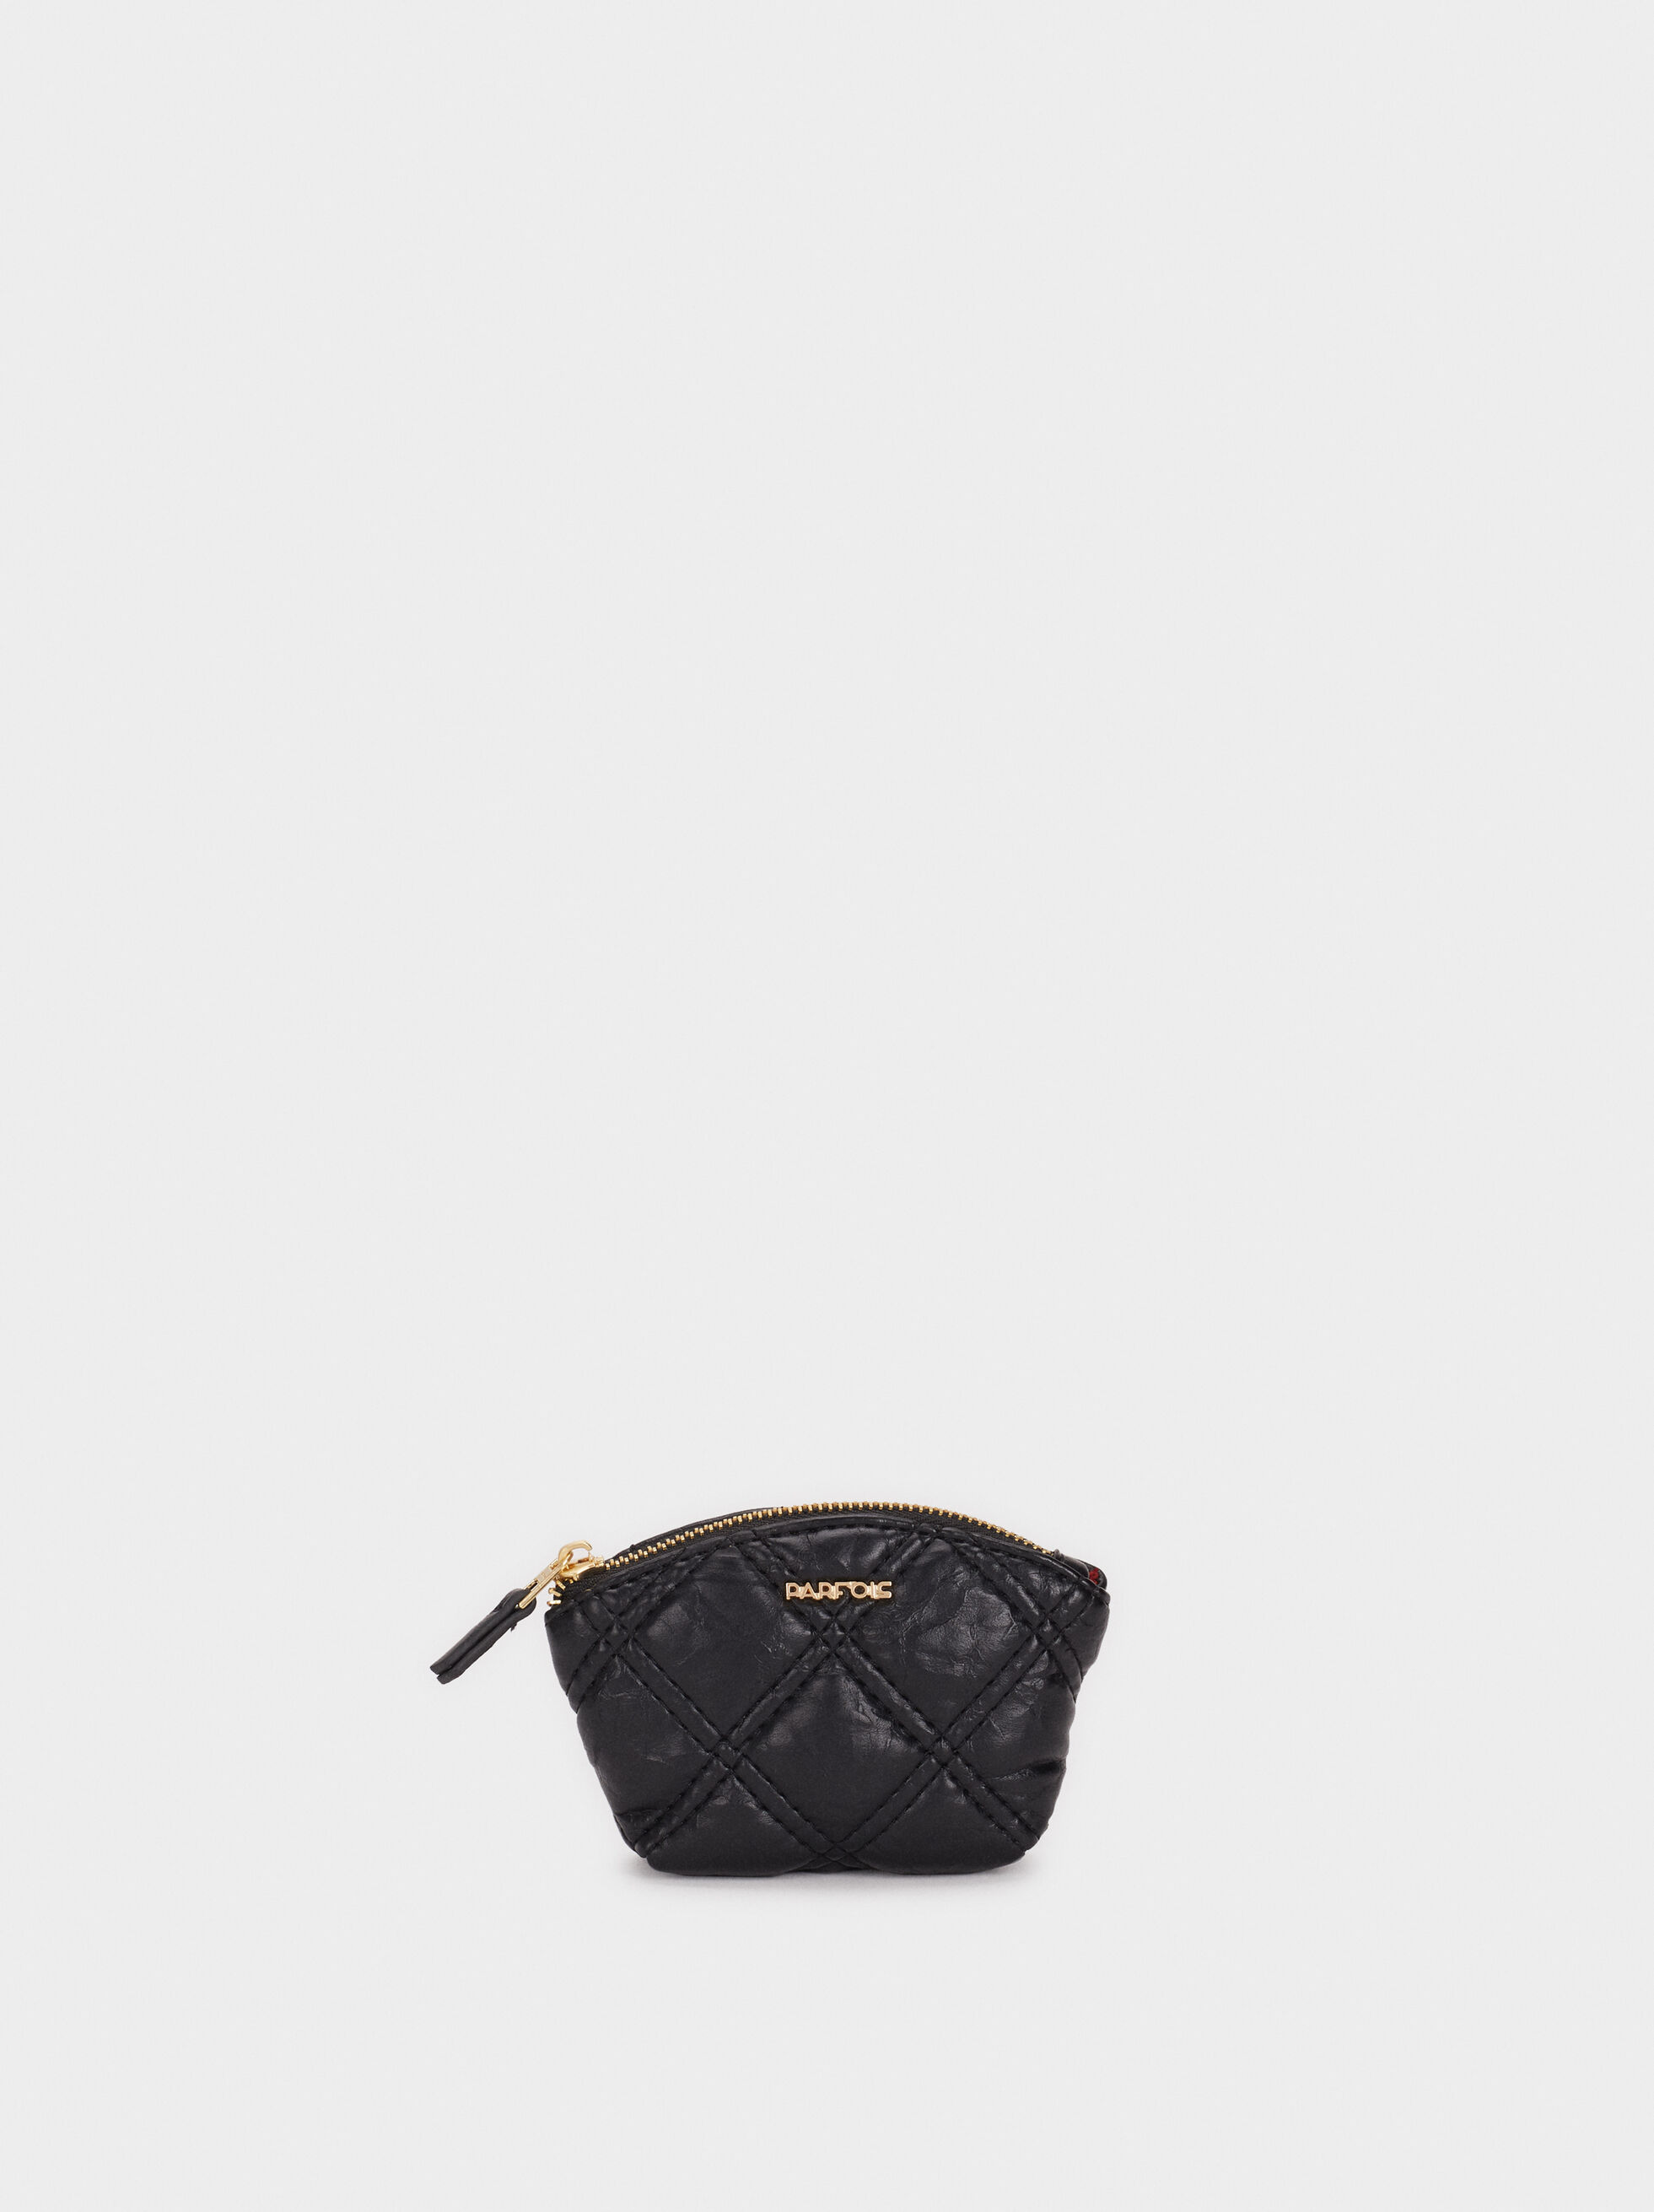 We Are Love Small Purse, Black, hi-res